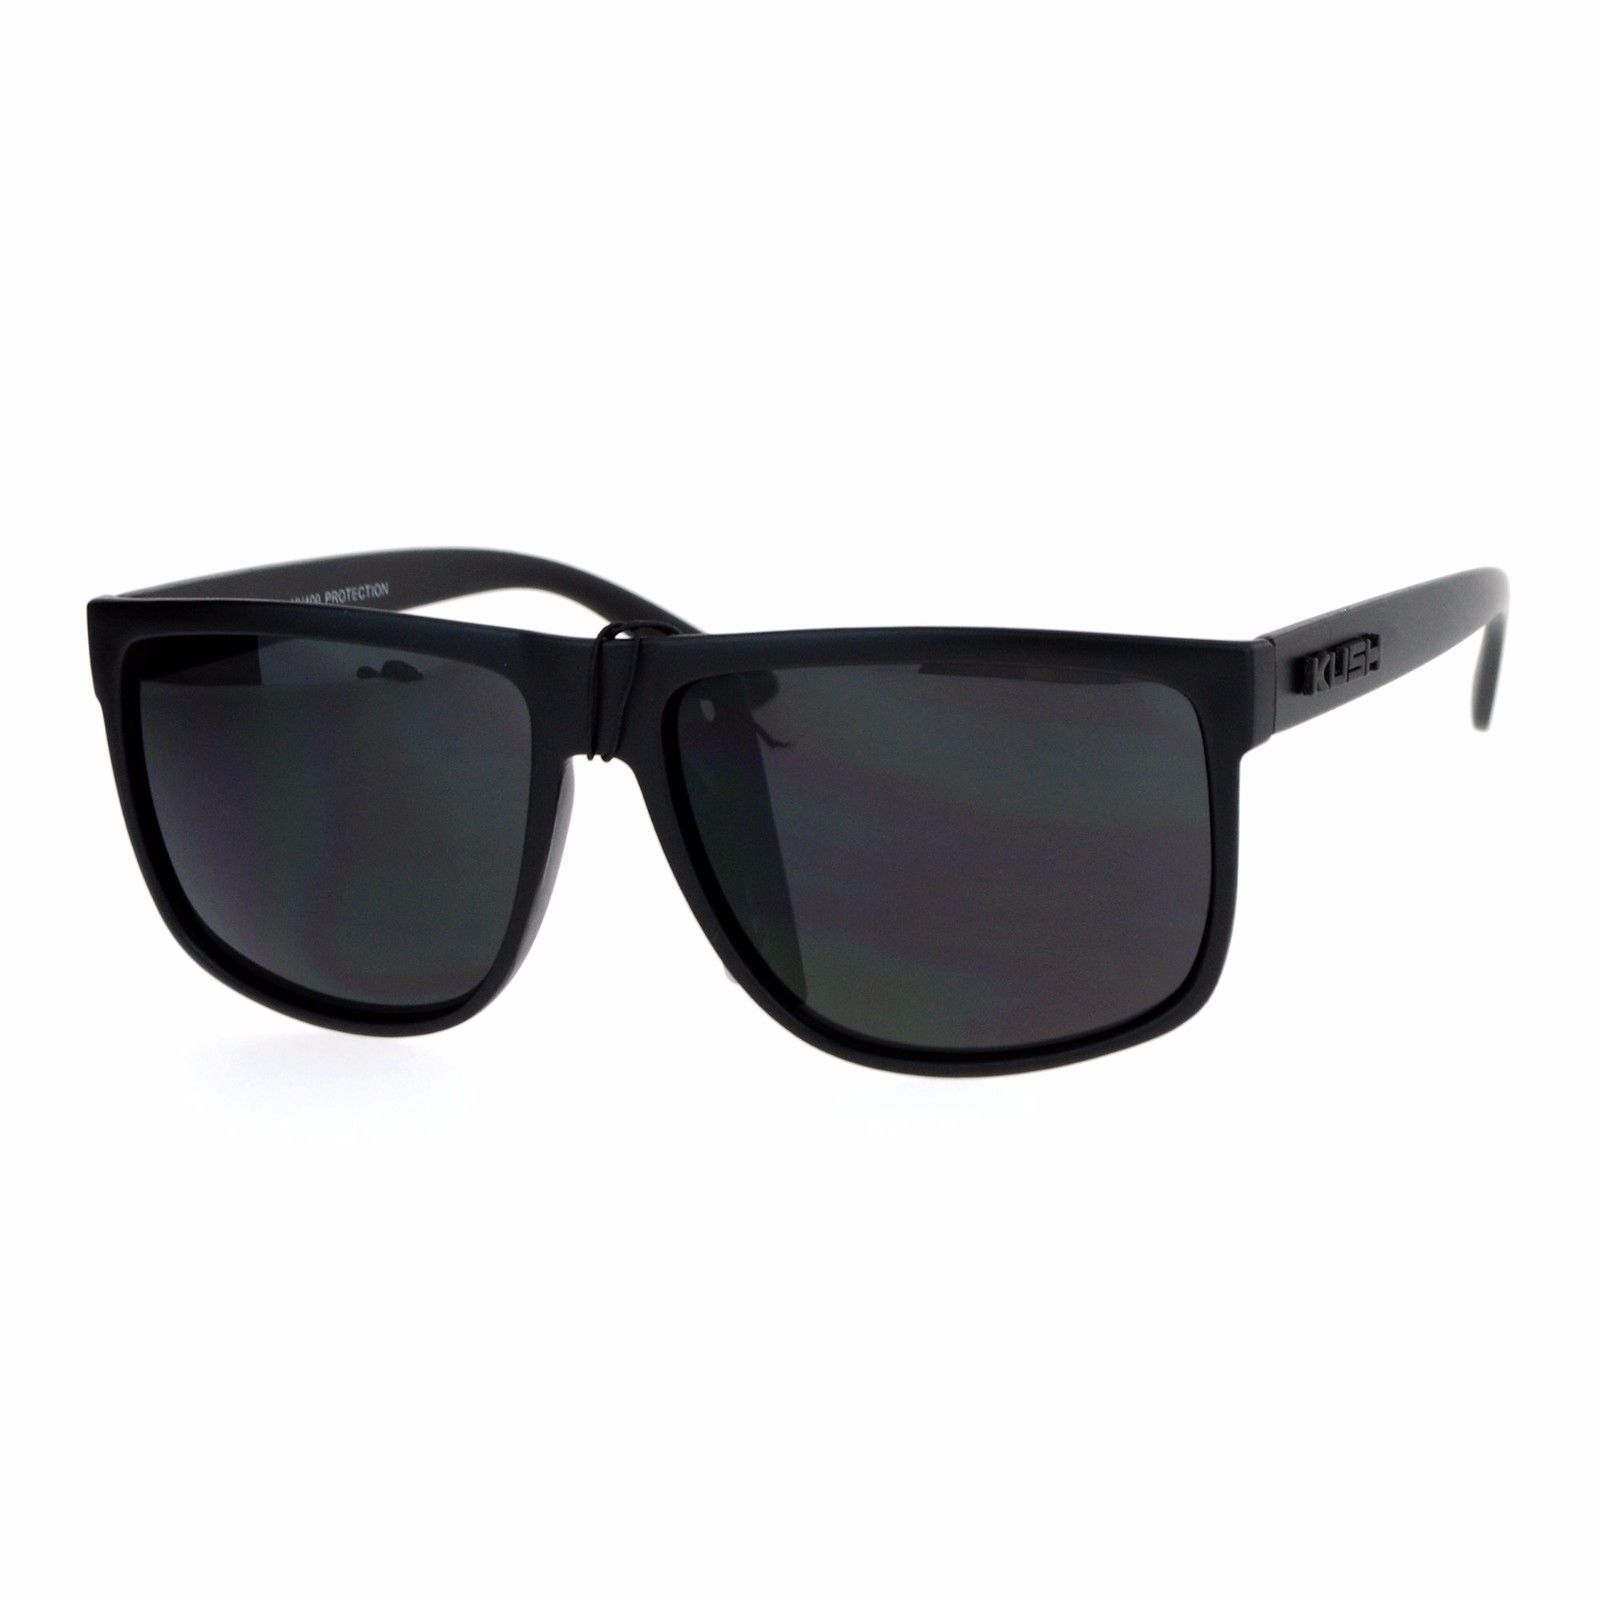 KUSH Sunglasses Classic Black Square Frame Unisex Fashion Shades UV 400